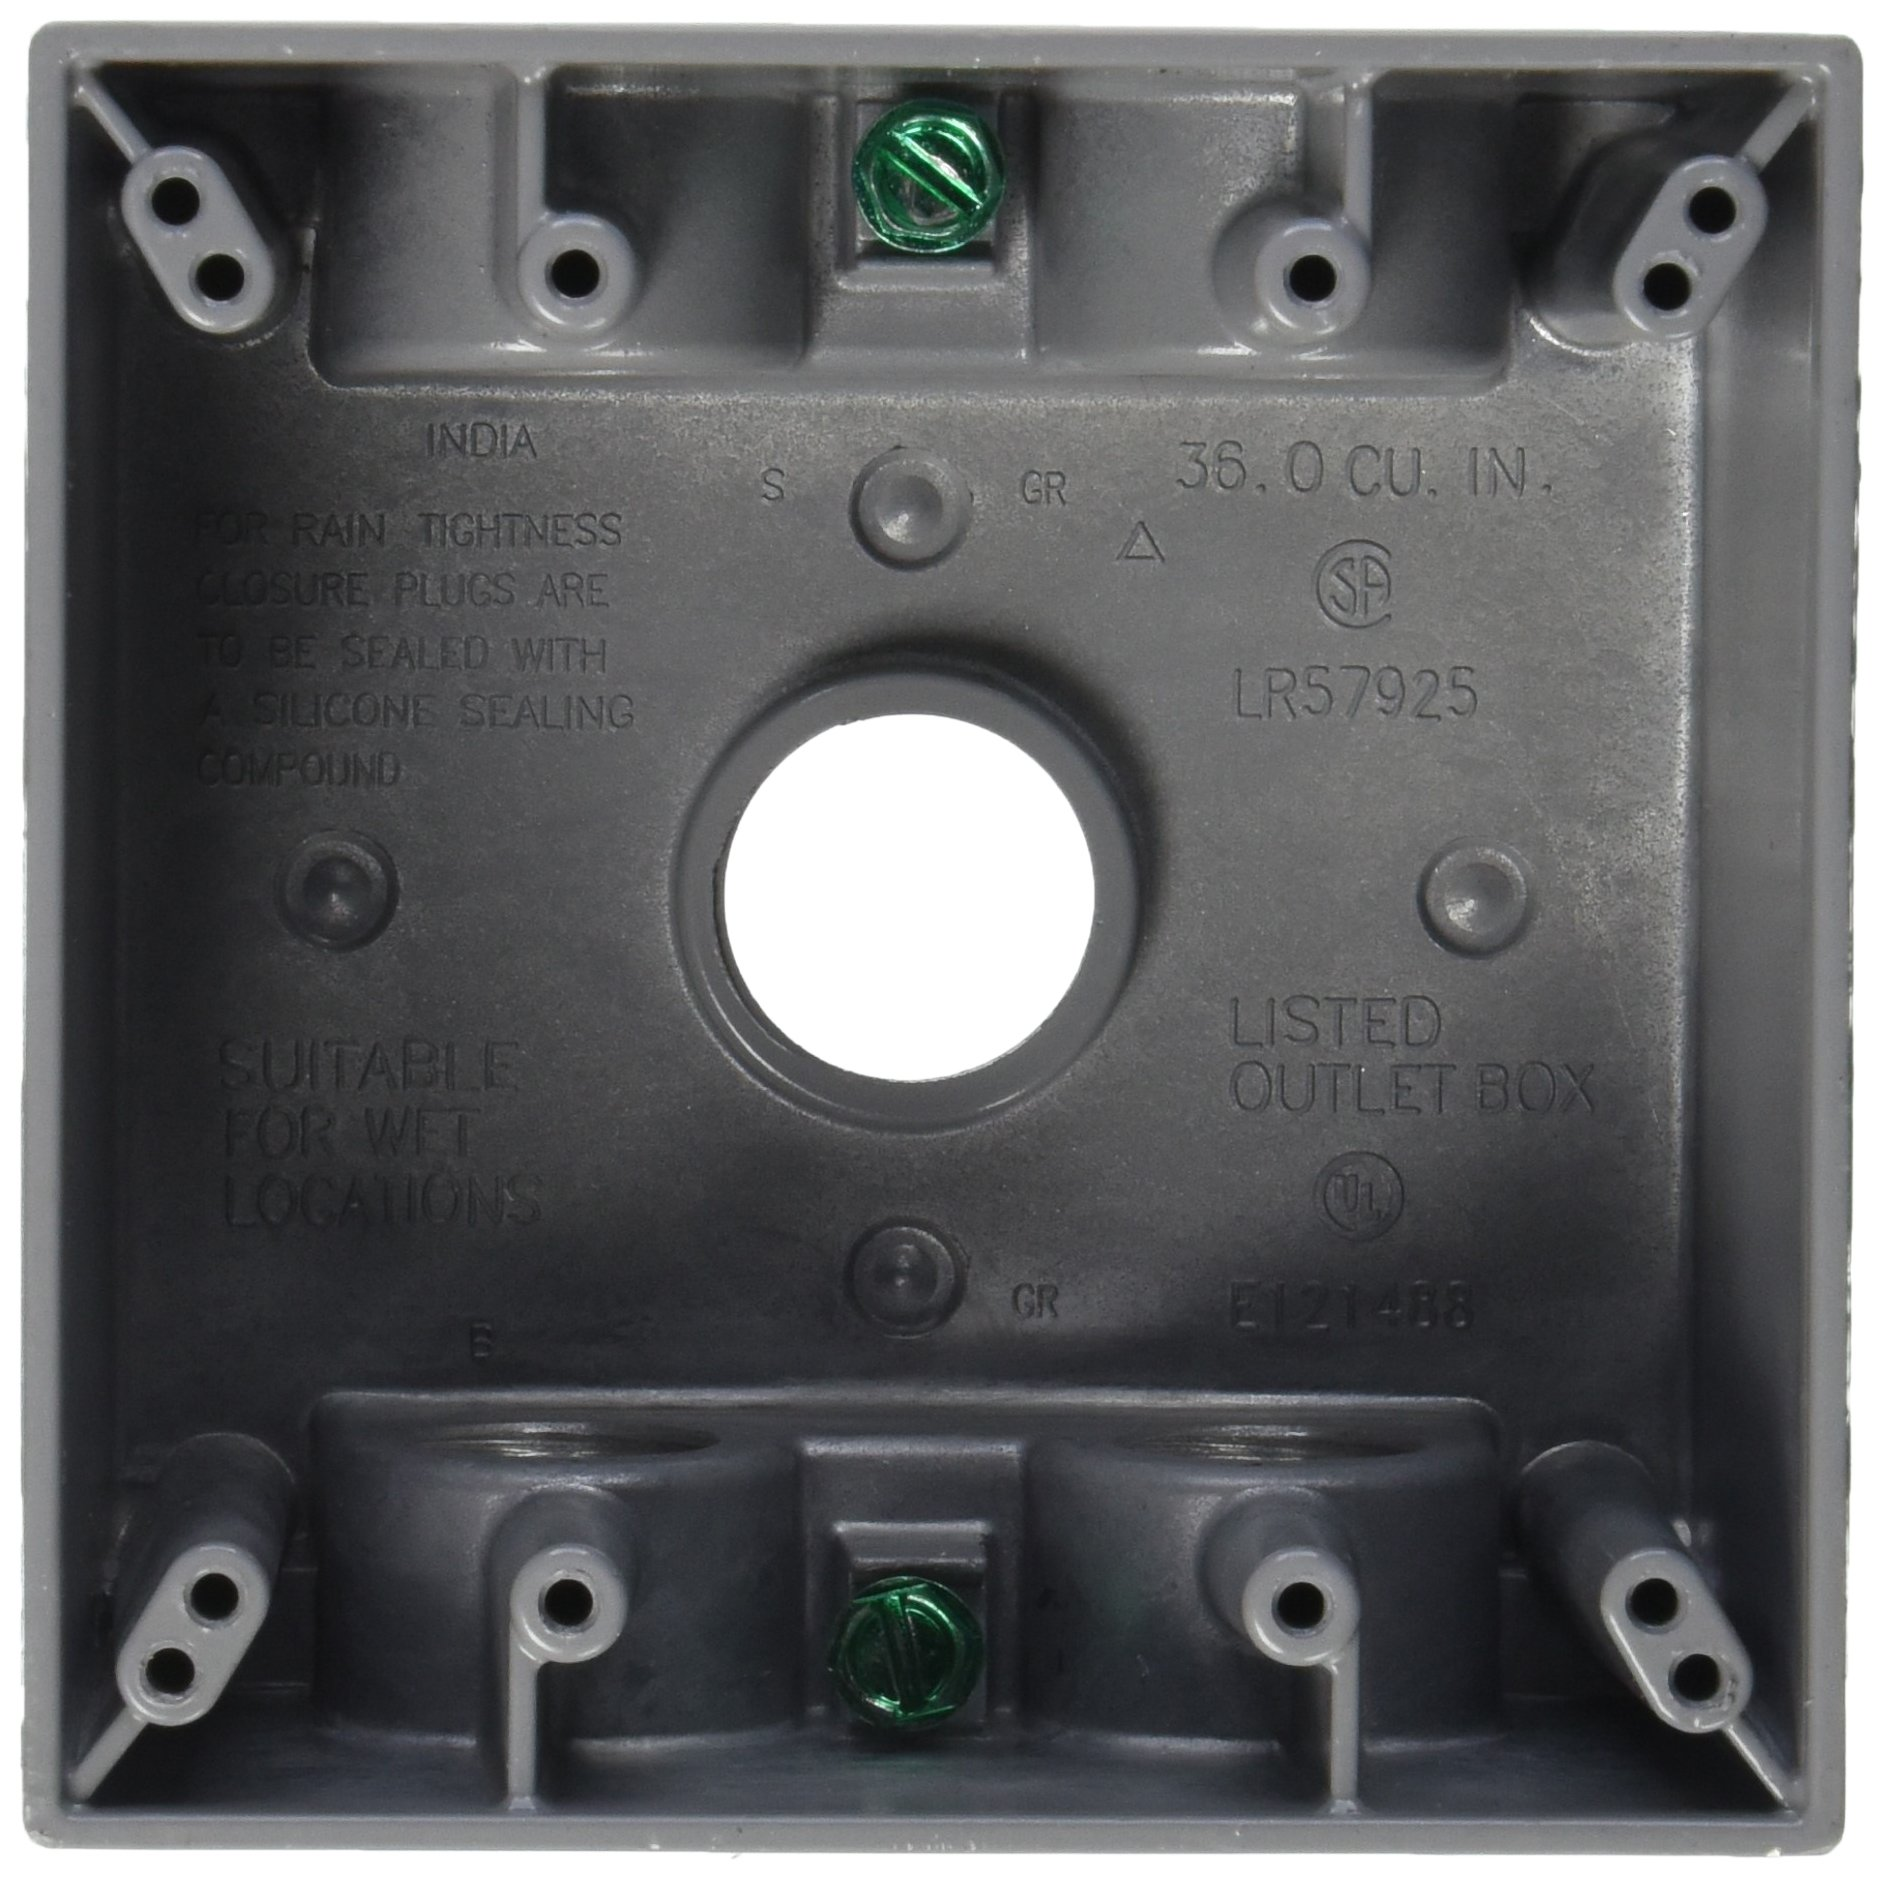 Hubbell-Bell 5388-0 2-Inch Deep 2-Gang 5 Outlet 36 Cubic Inch Weatherproof Box, Gray